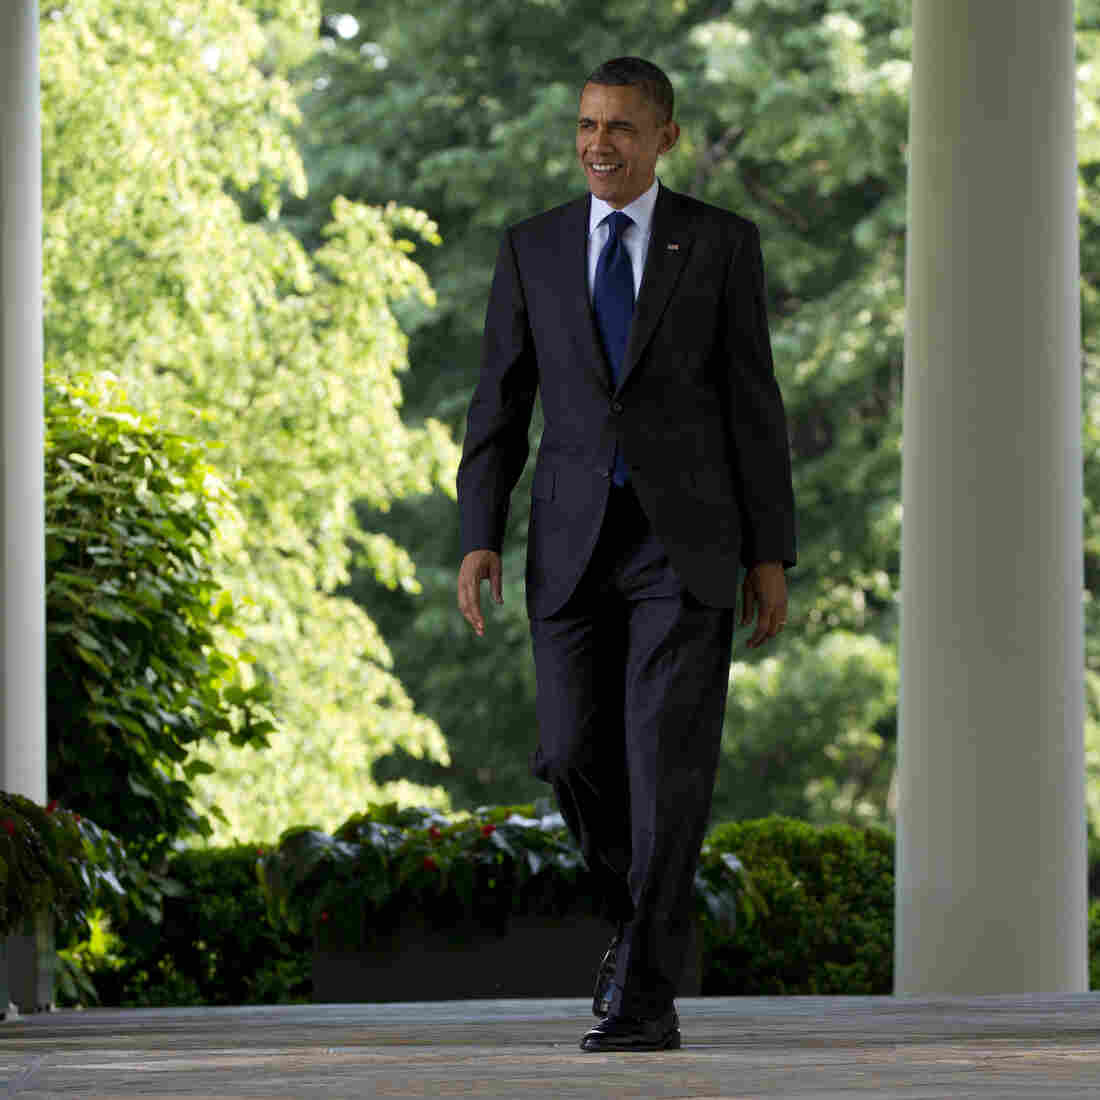 President Obama walks outside the Oval Office on May 3.